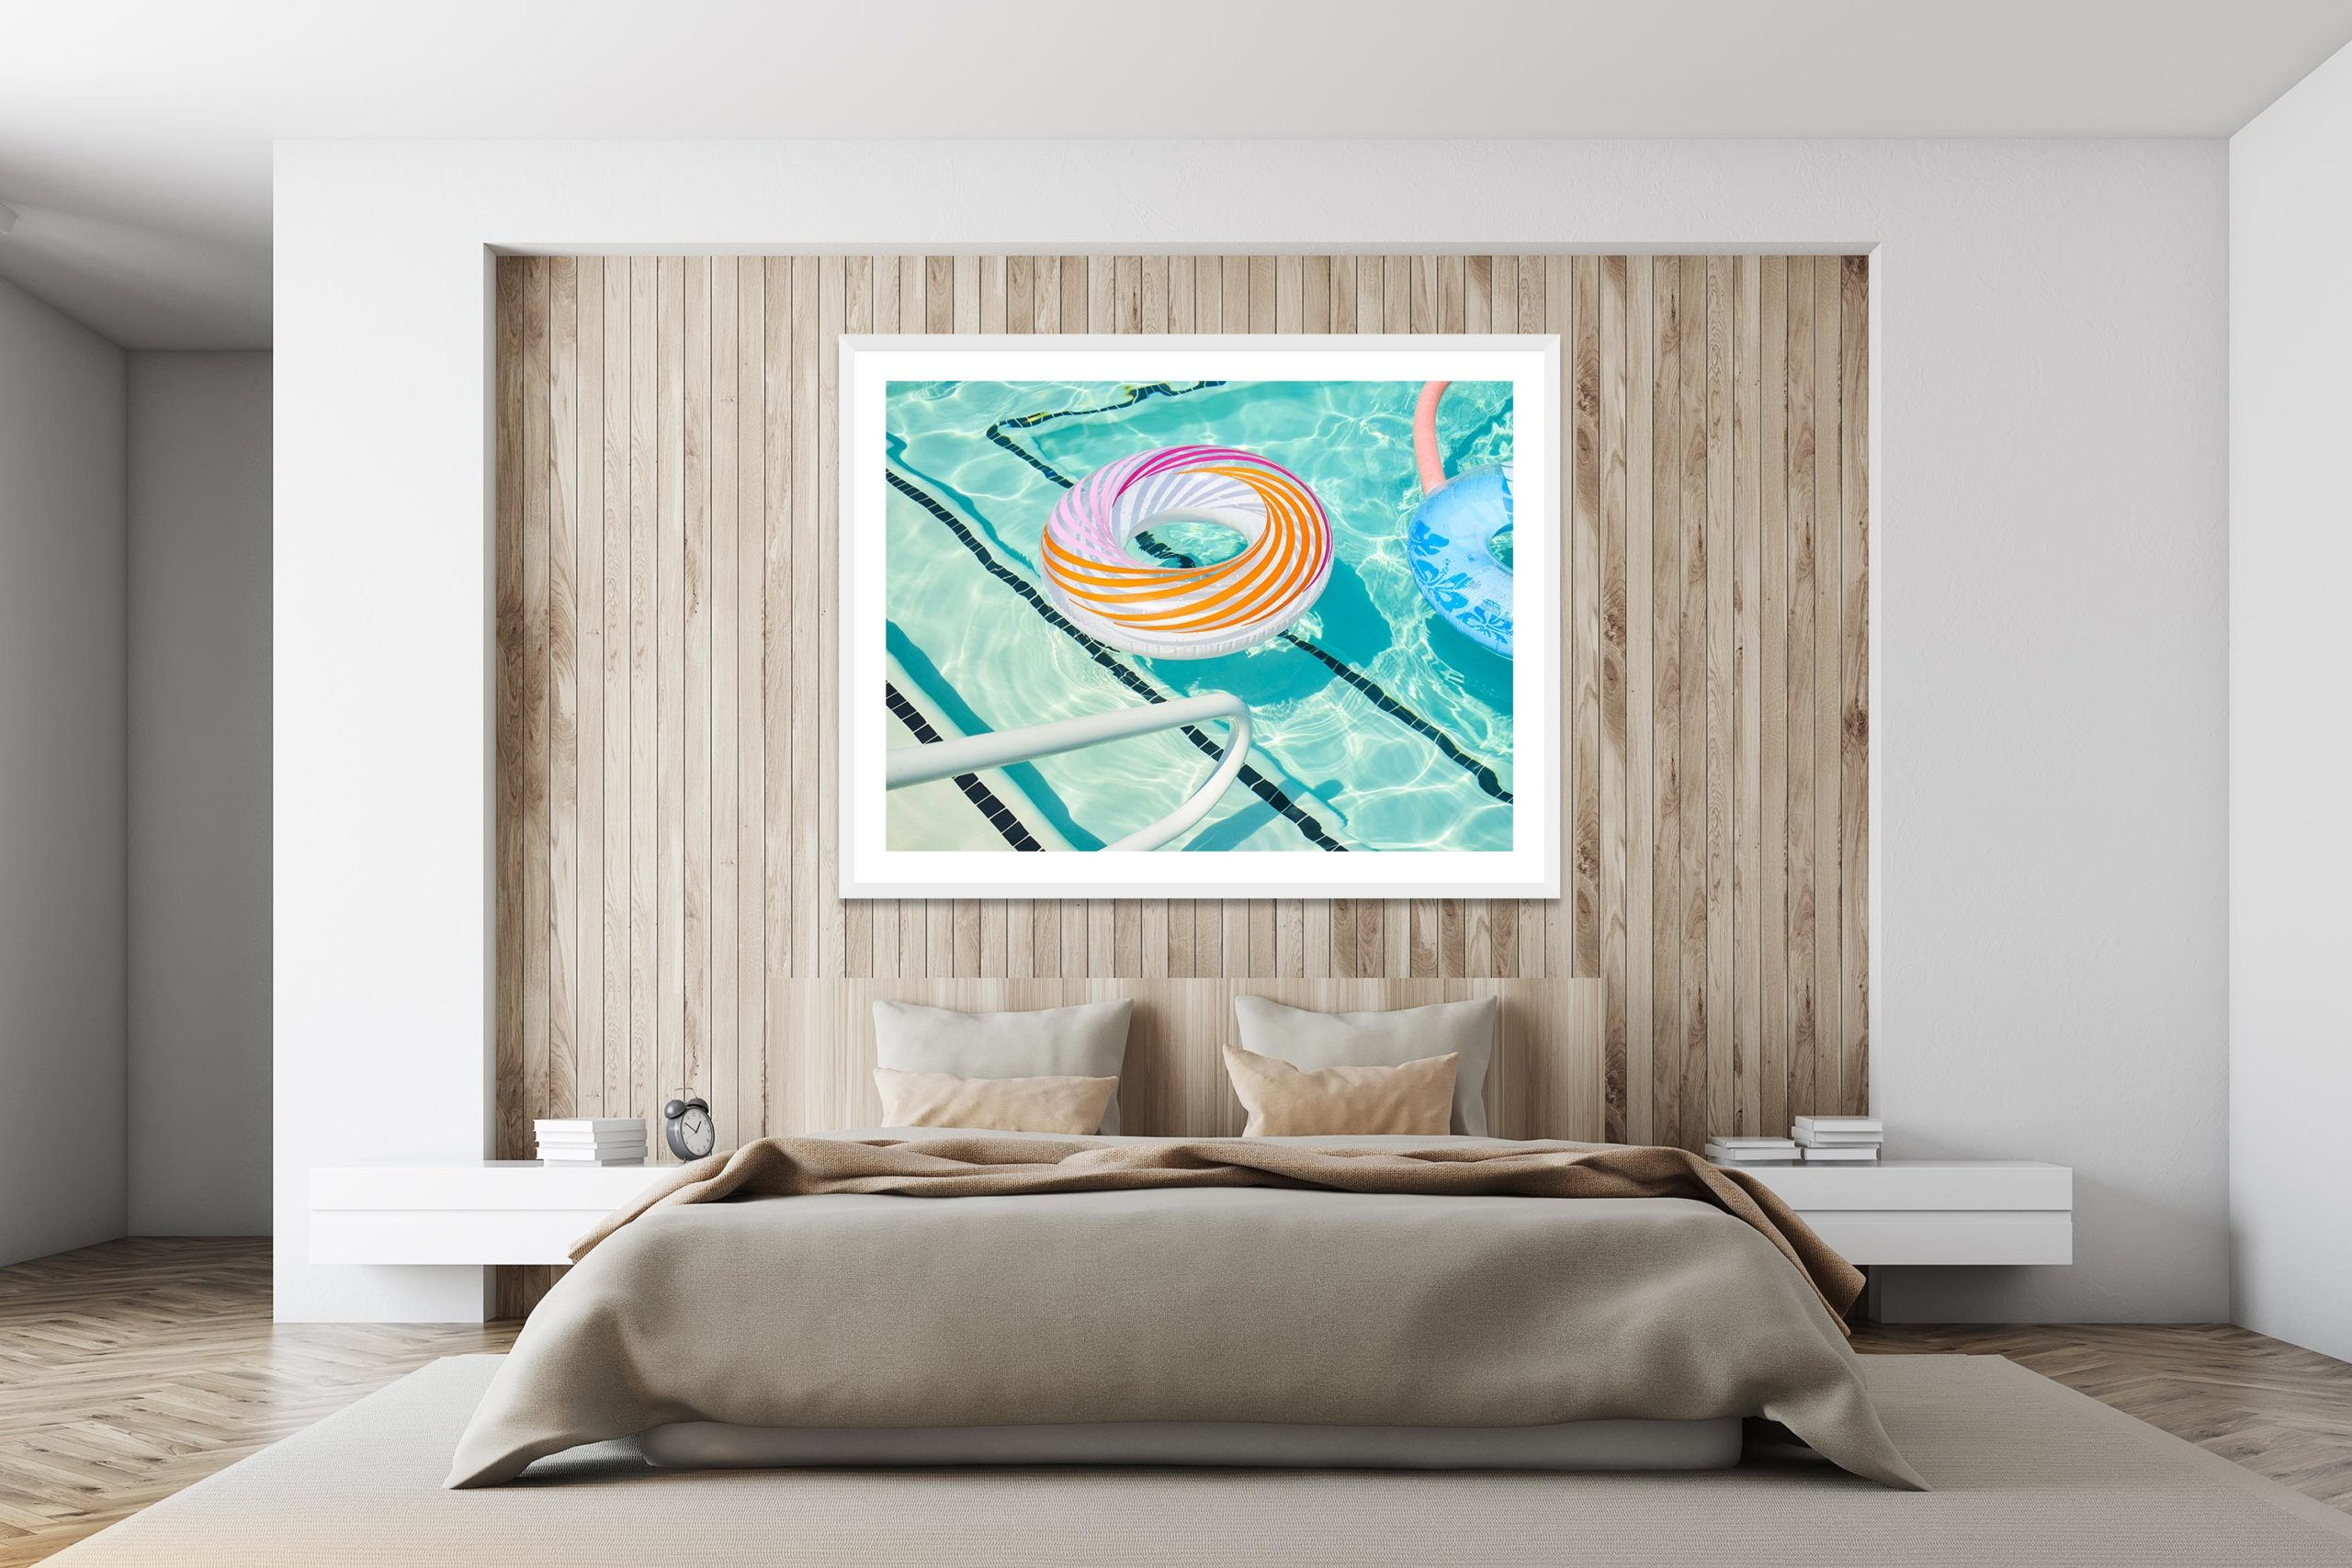 Rings - White Frame - I Heart Palm Springs Collection - Fine Art Photography by Toby Dixon